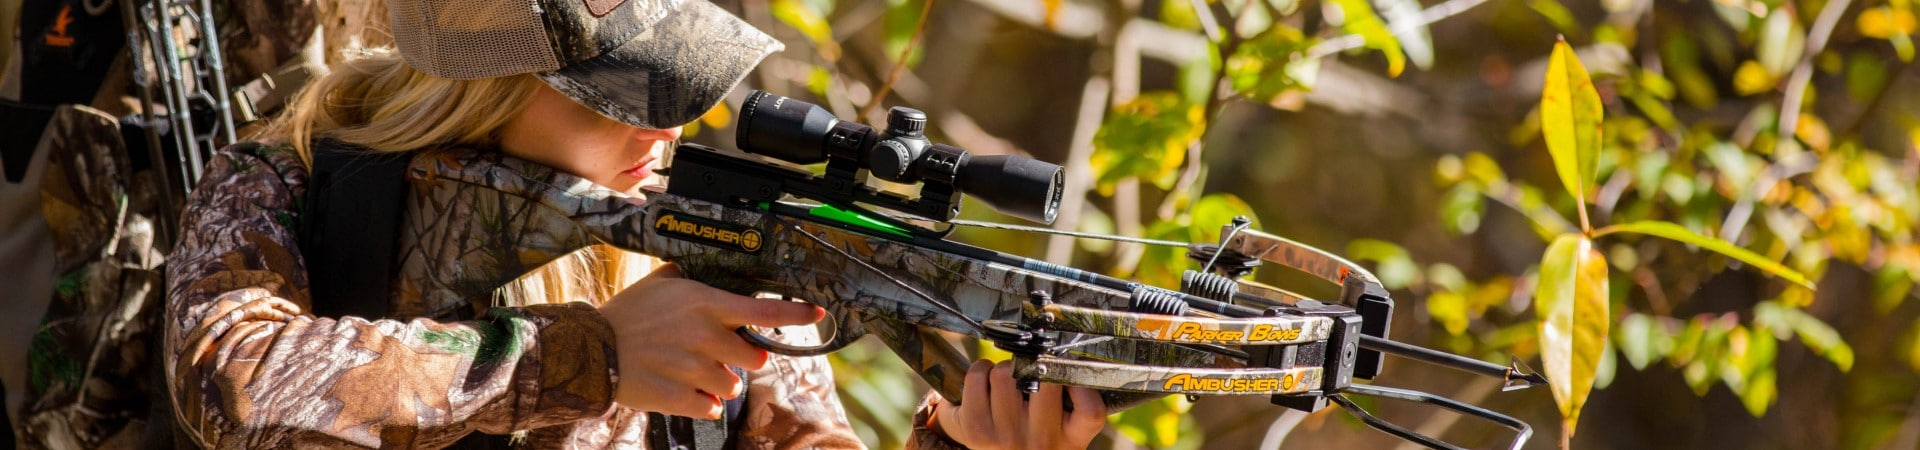 Best Crossbows for Women Reviewed in Detail